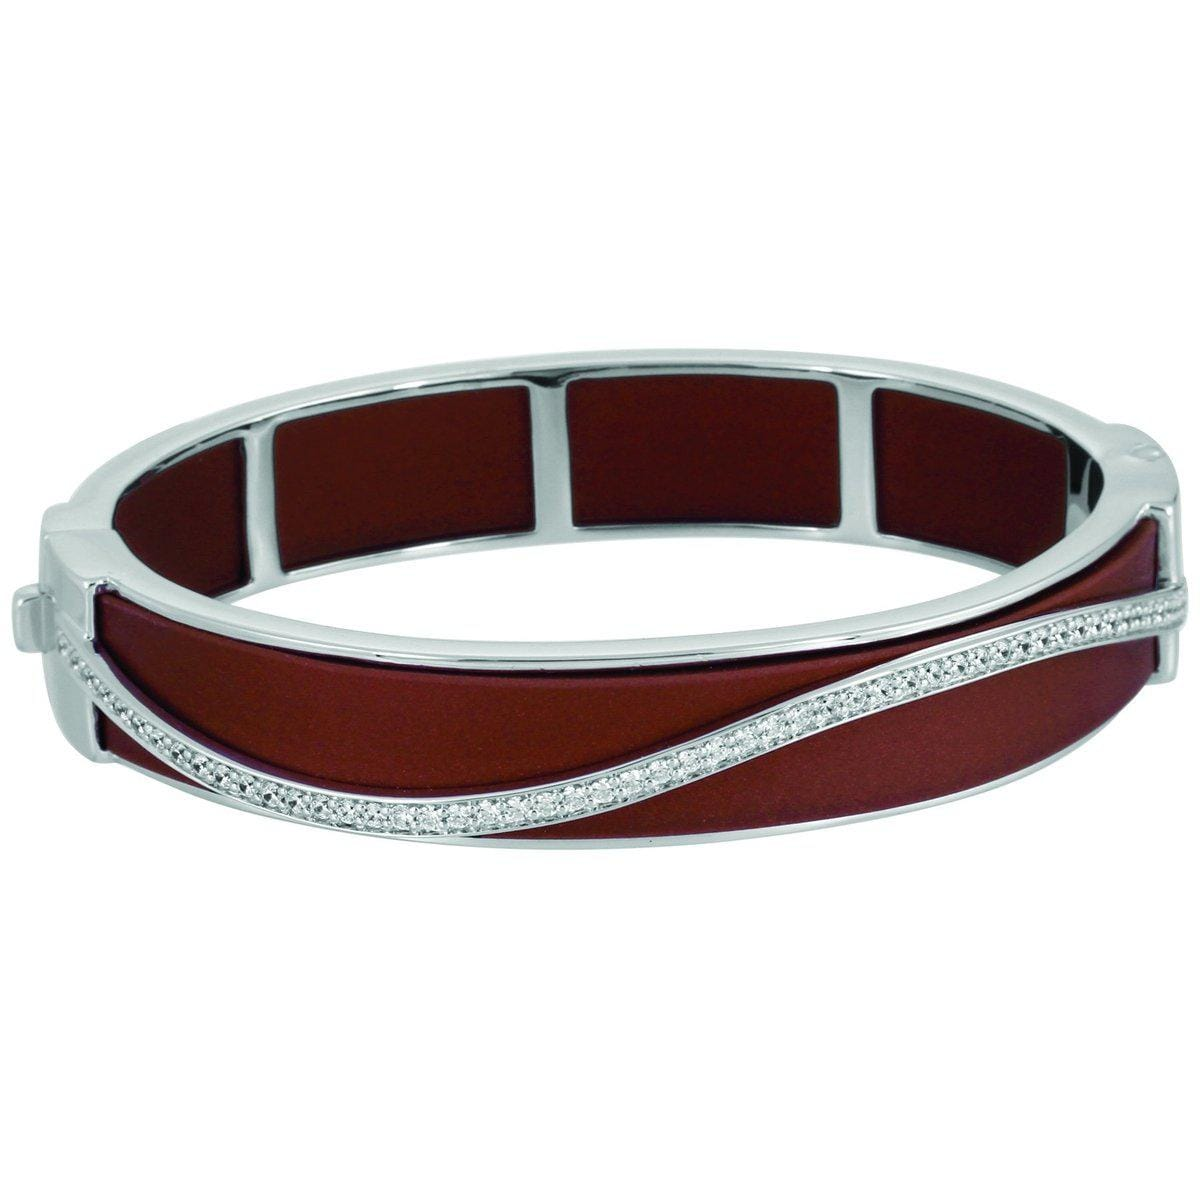 Enrapture Wavy Brown Bangle-Belle Etoile-Renee Taylor Gallery